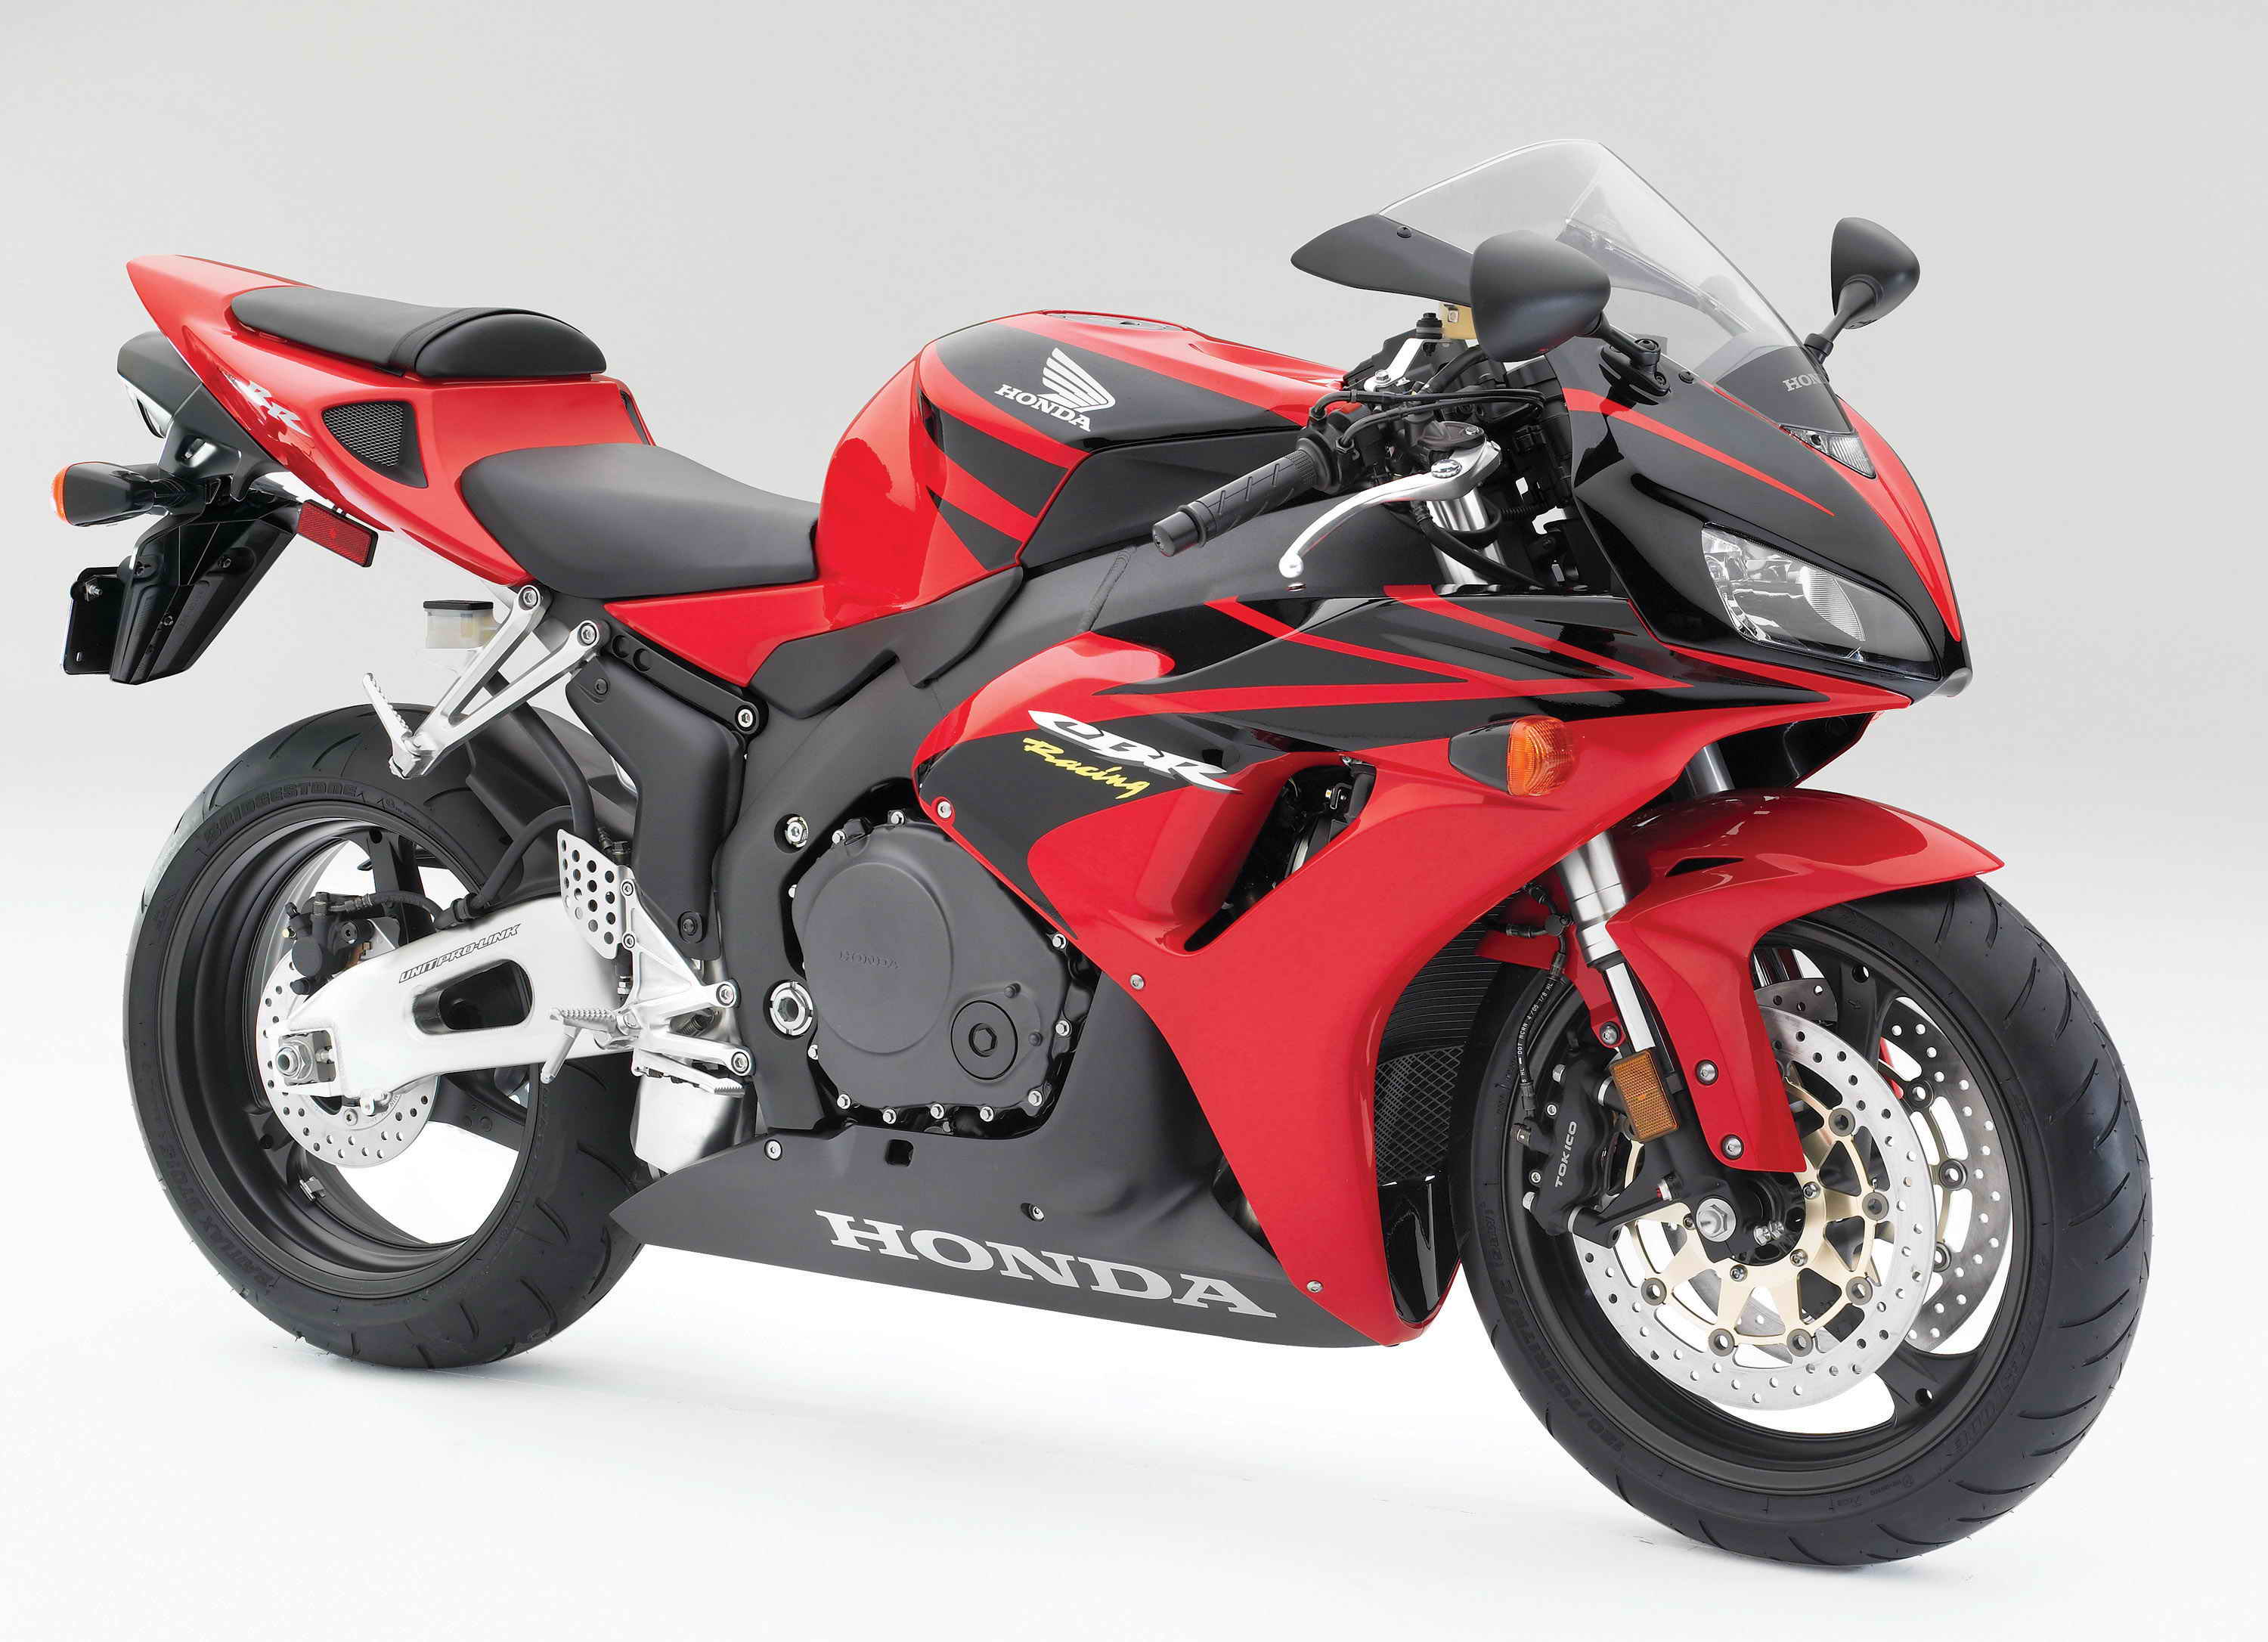 2006 Honda CBR1000RR | Top Speed